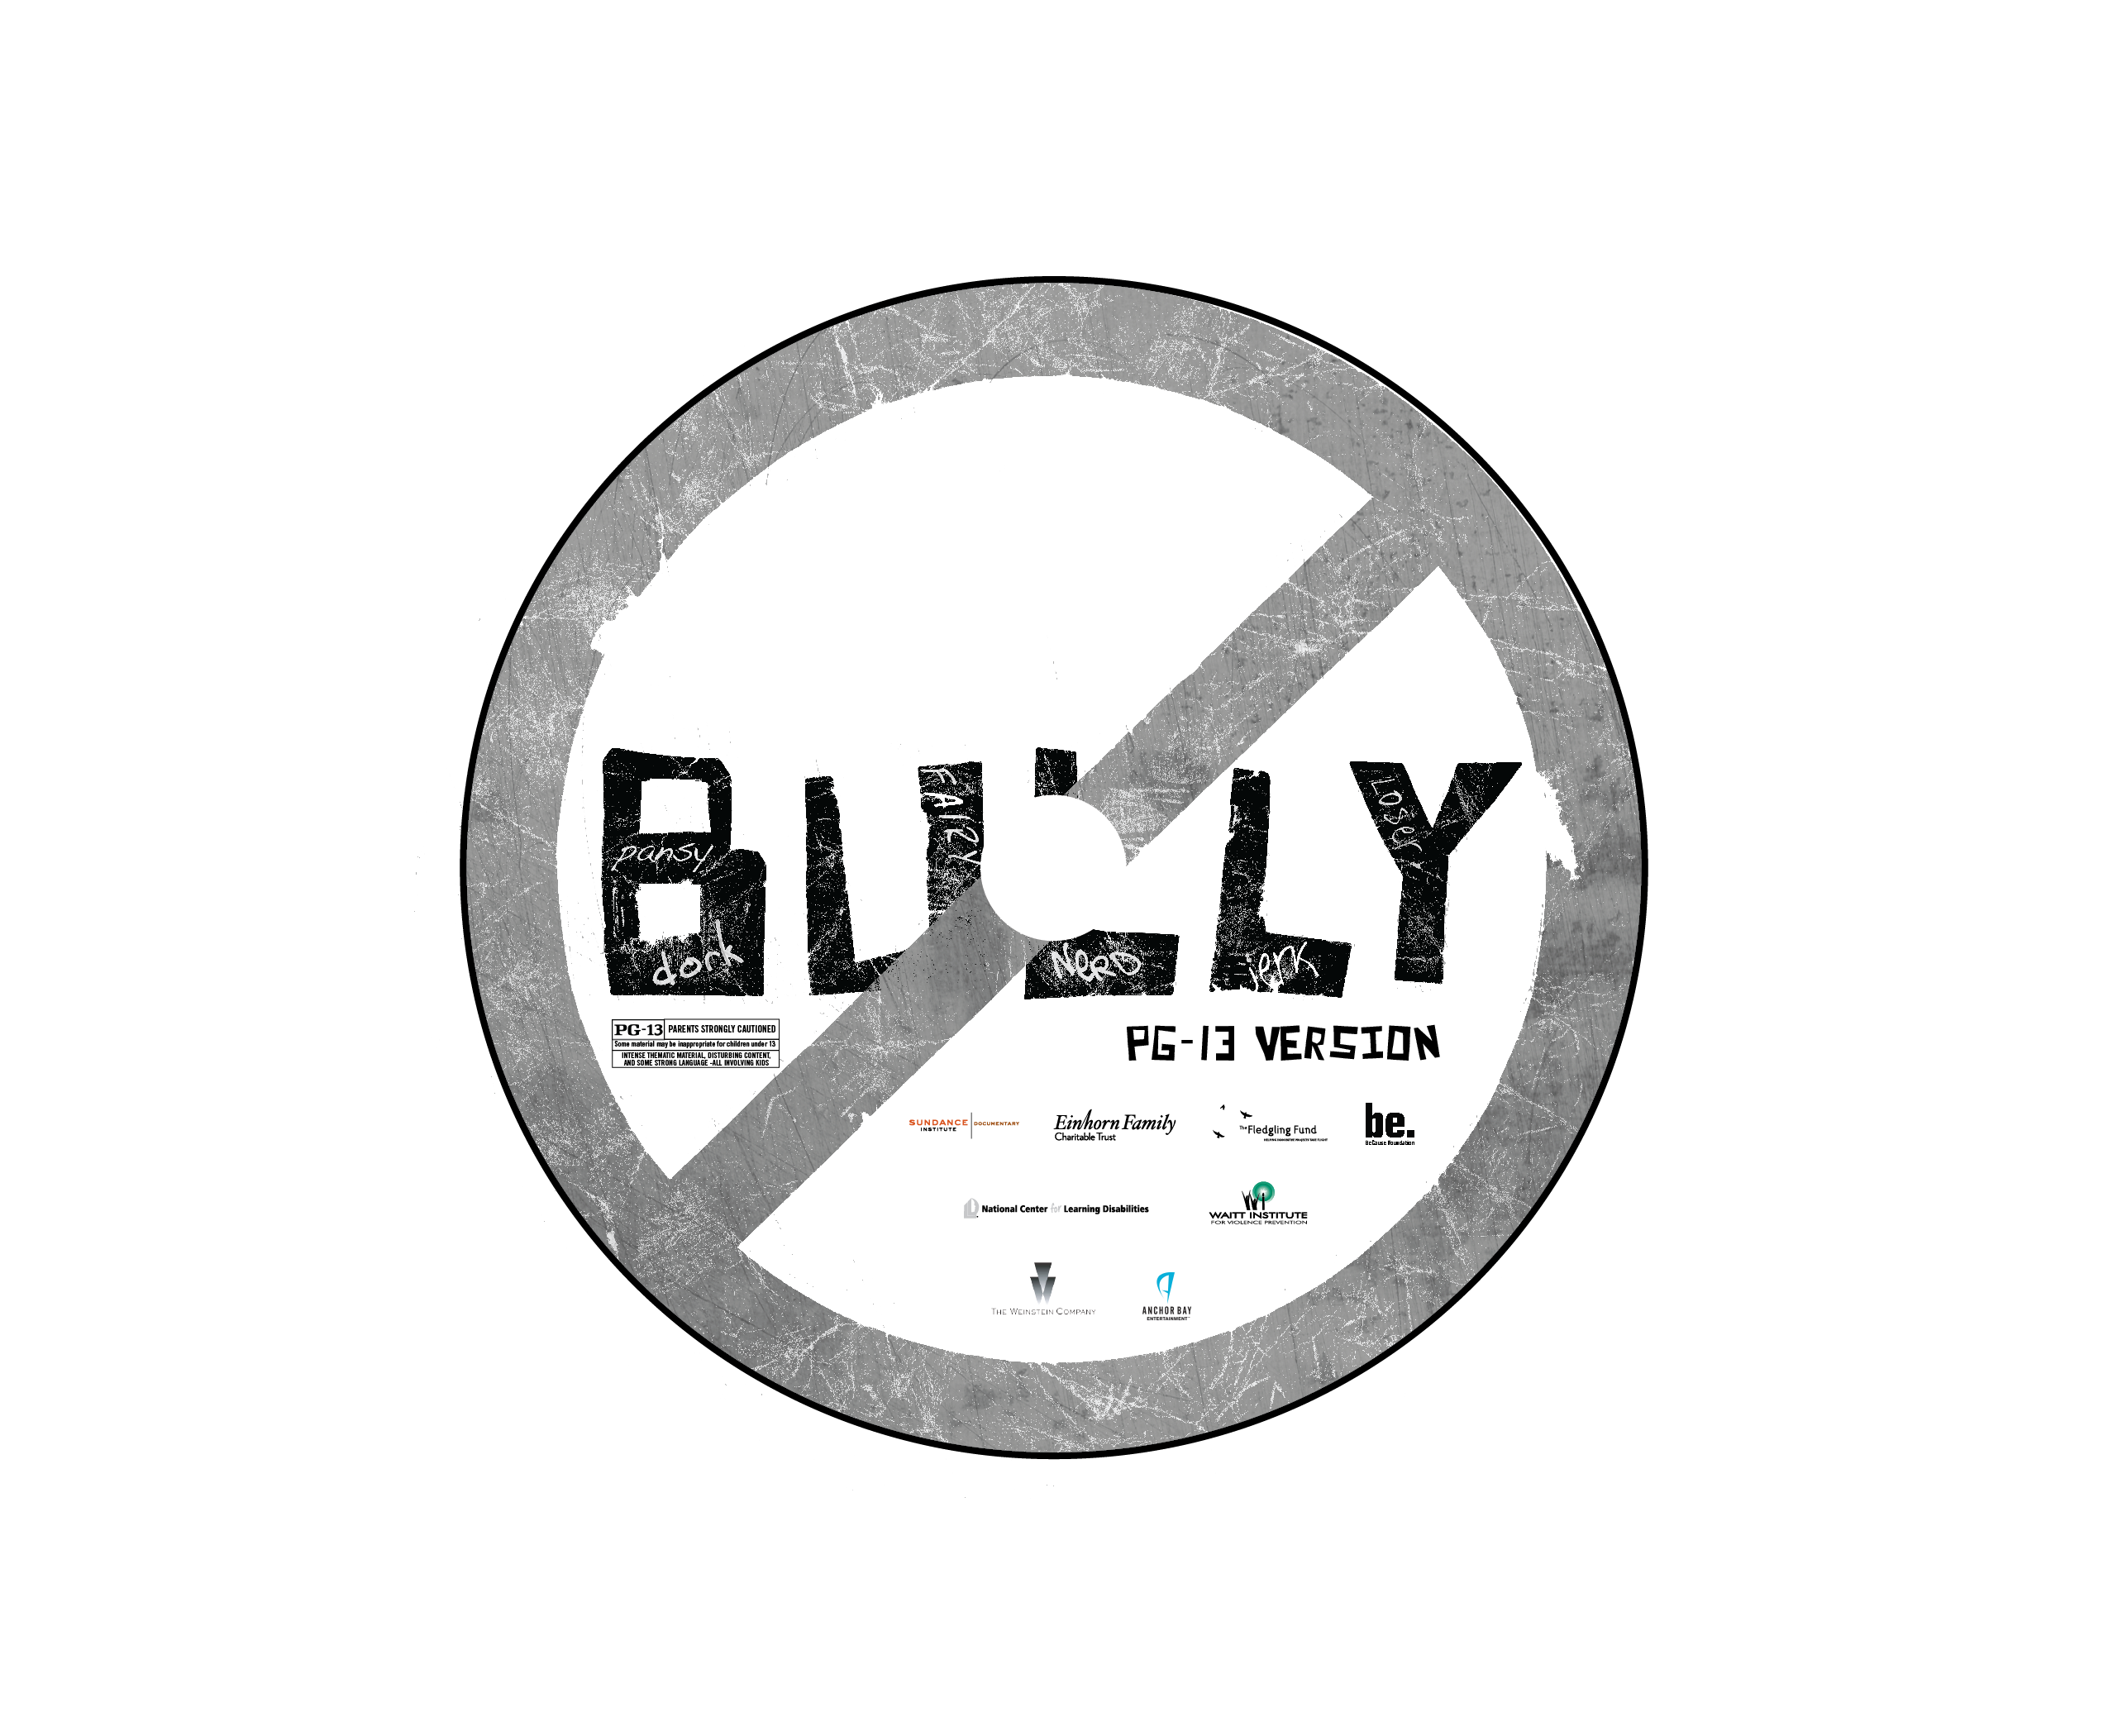 Bully_DVD_PG13_CD_-_DVD_Label.png